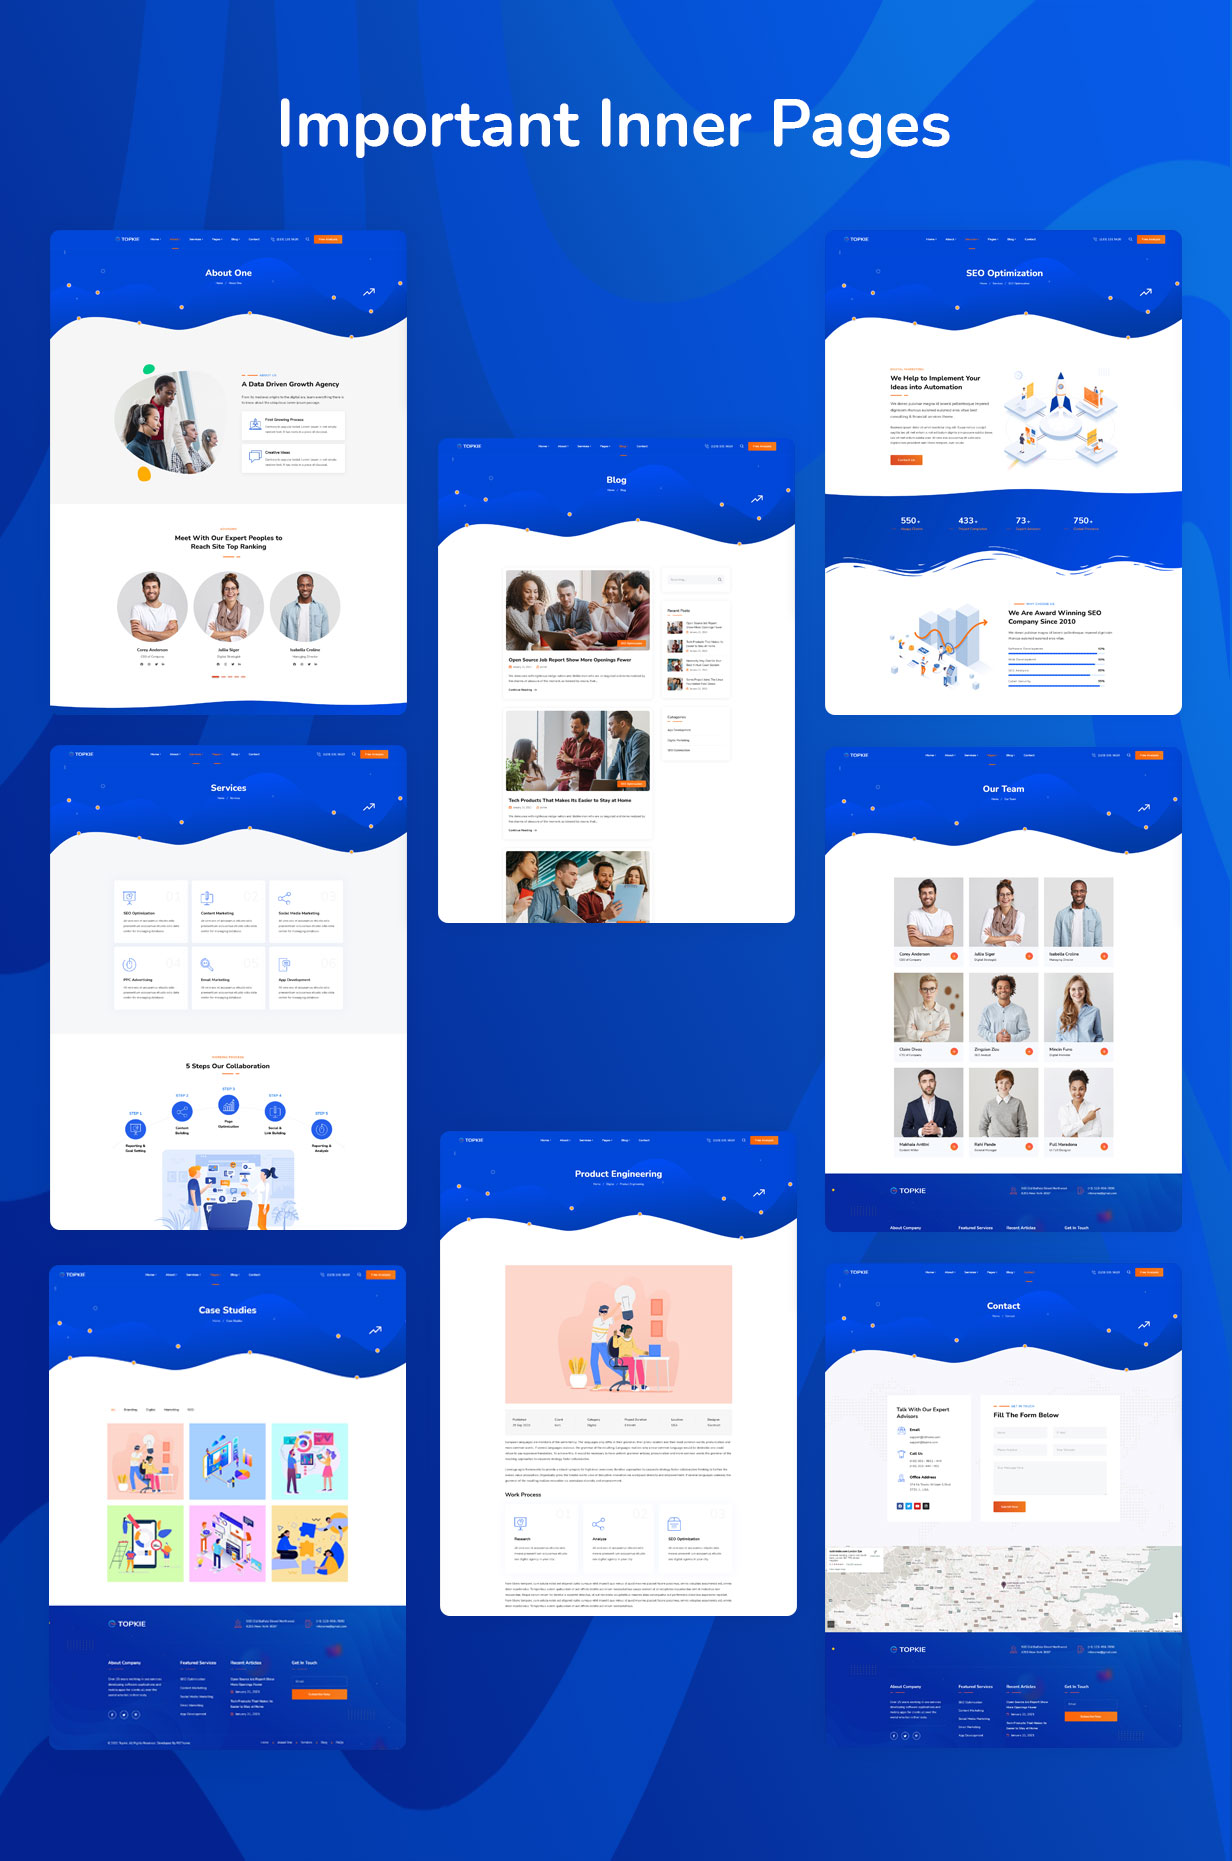 topkie - SEO & Digital Marketing WordPress Theme